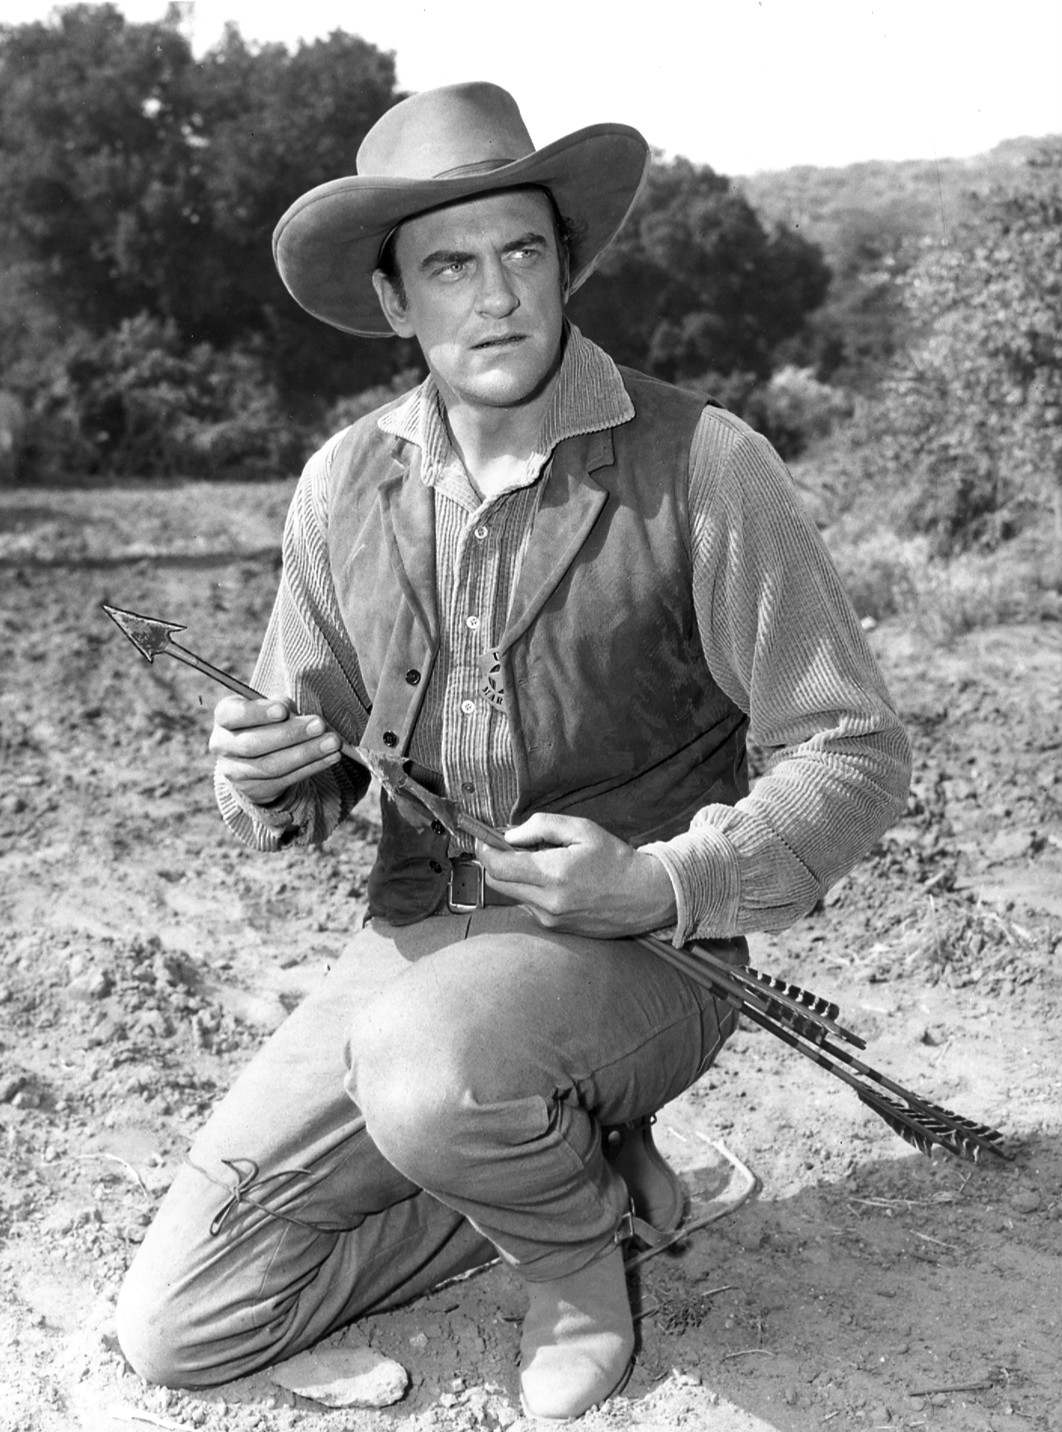 James Arness was badly wounded at Anzio, but survived to star in the television Western, Gunsmoke